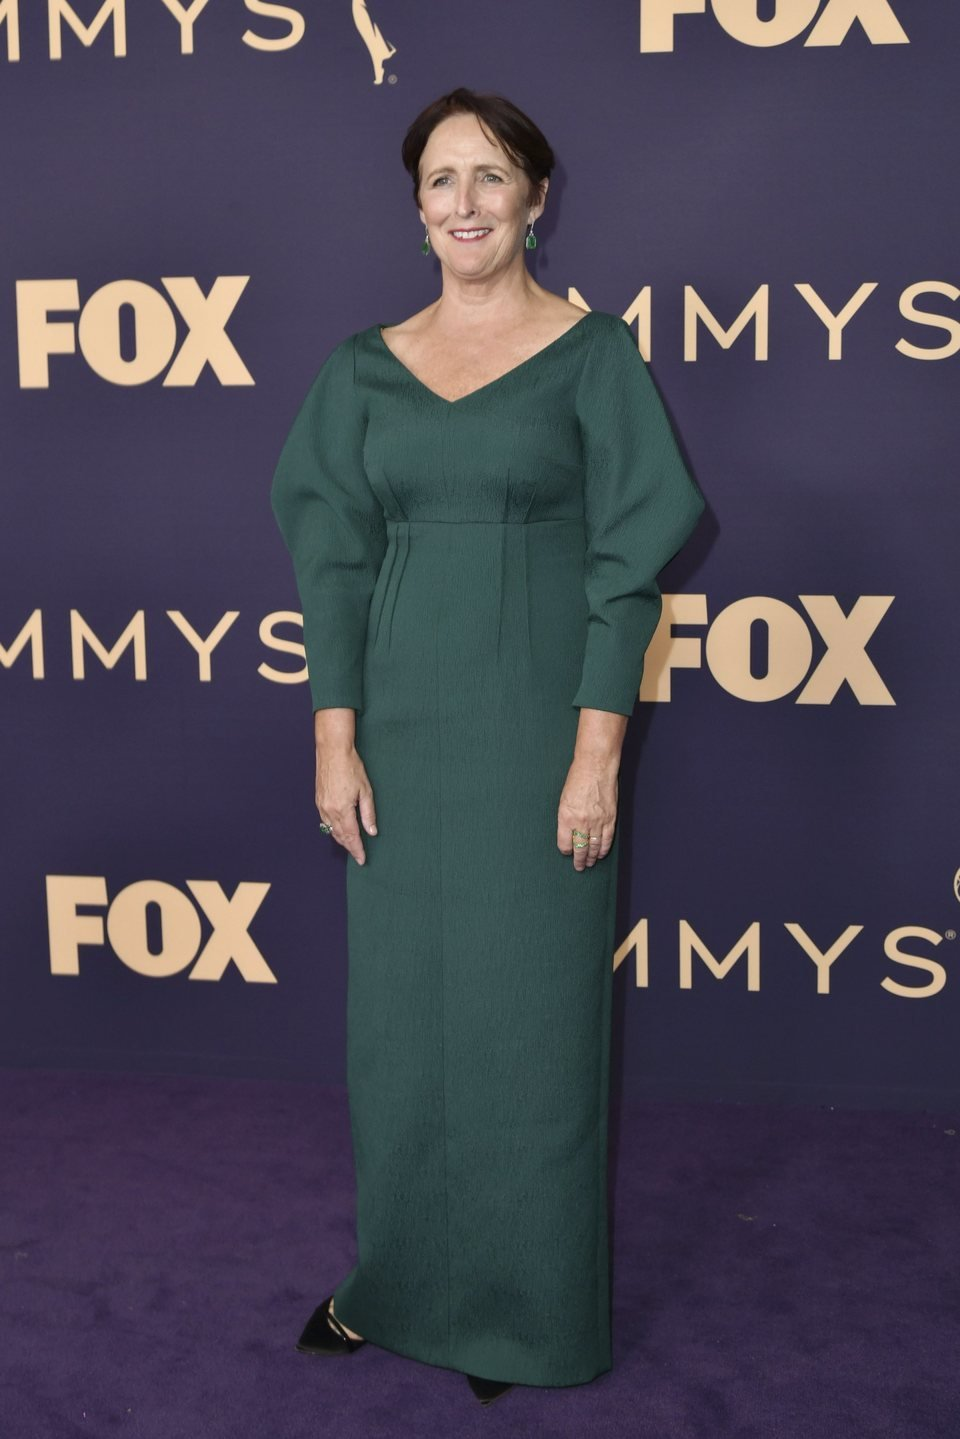 Fiona Shaw at the Emmy 2019 red carpet